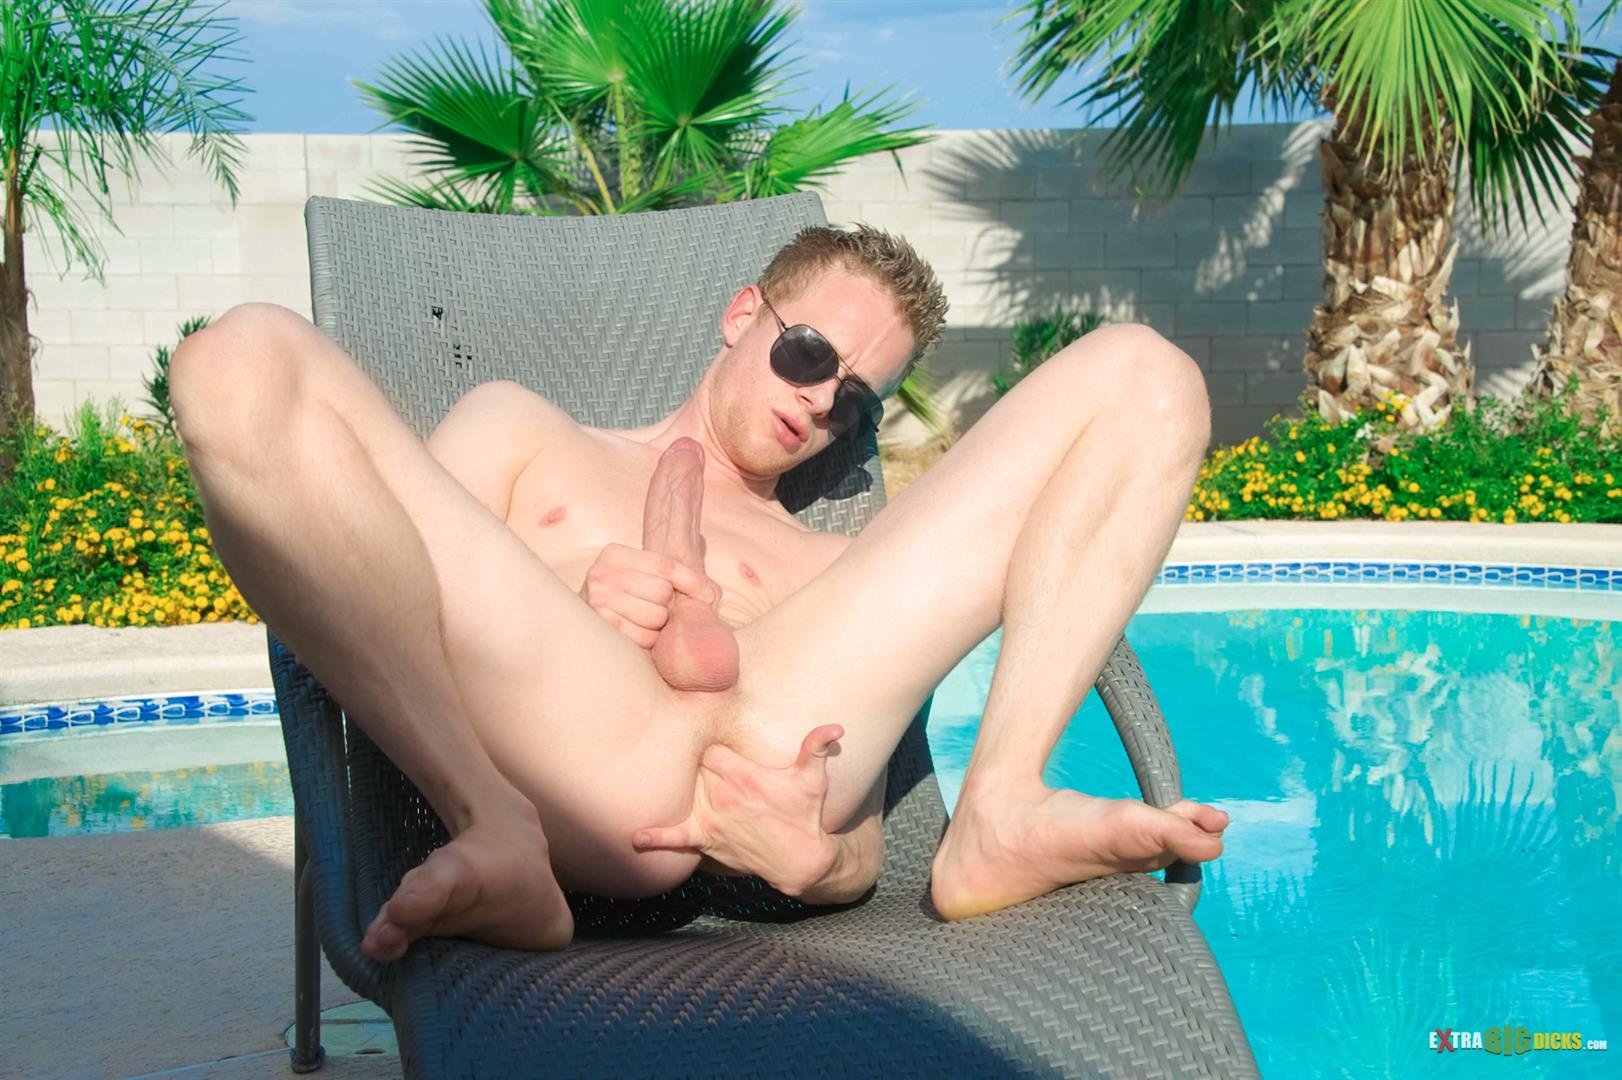 Extra-Big-Dicks-Liam-Harkmore-Huge-cock-jerkoff-with-dildo-Amateur-Gay-Porn-04 Amateur Young Guy Lays Out In The Florida Sun and Strokes His Big Long Cock